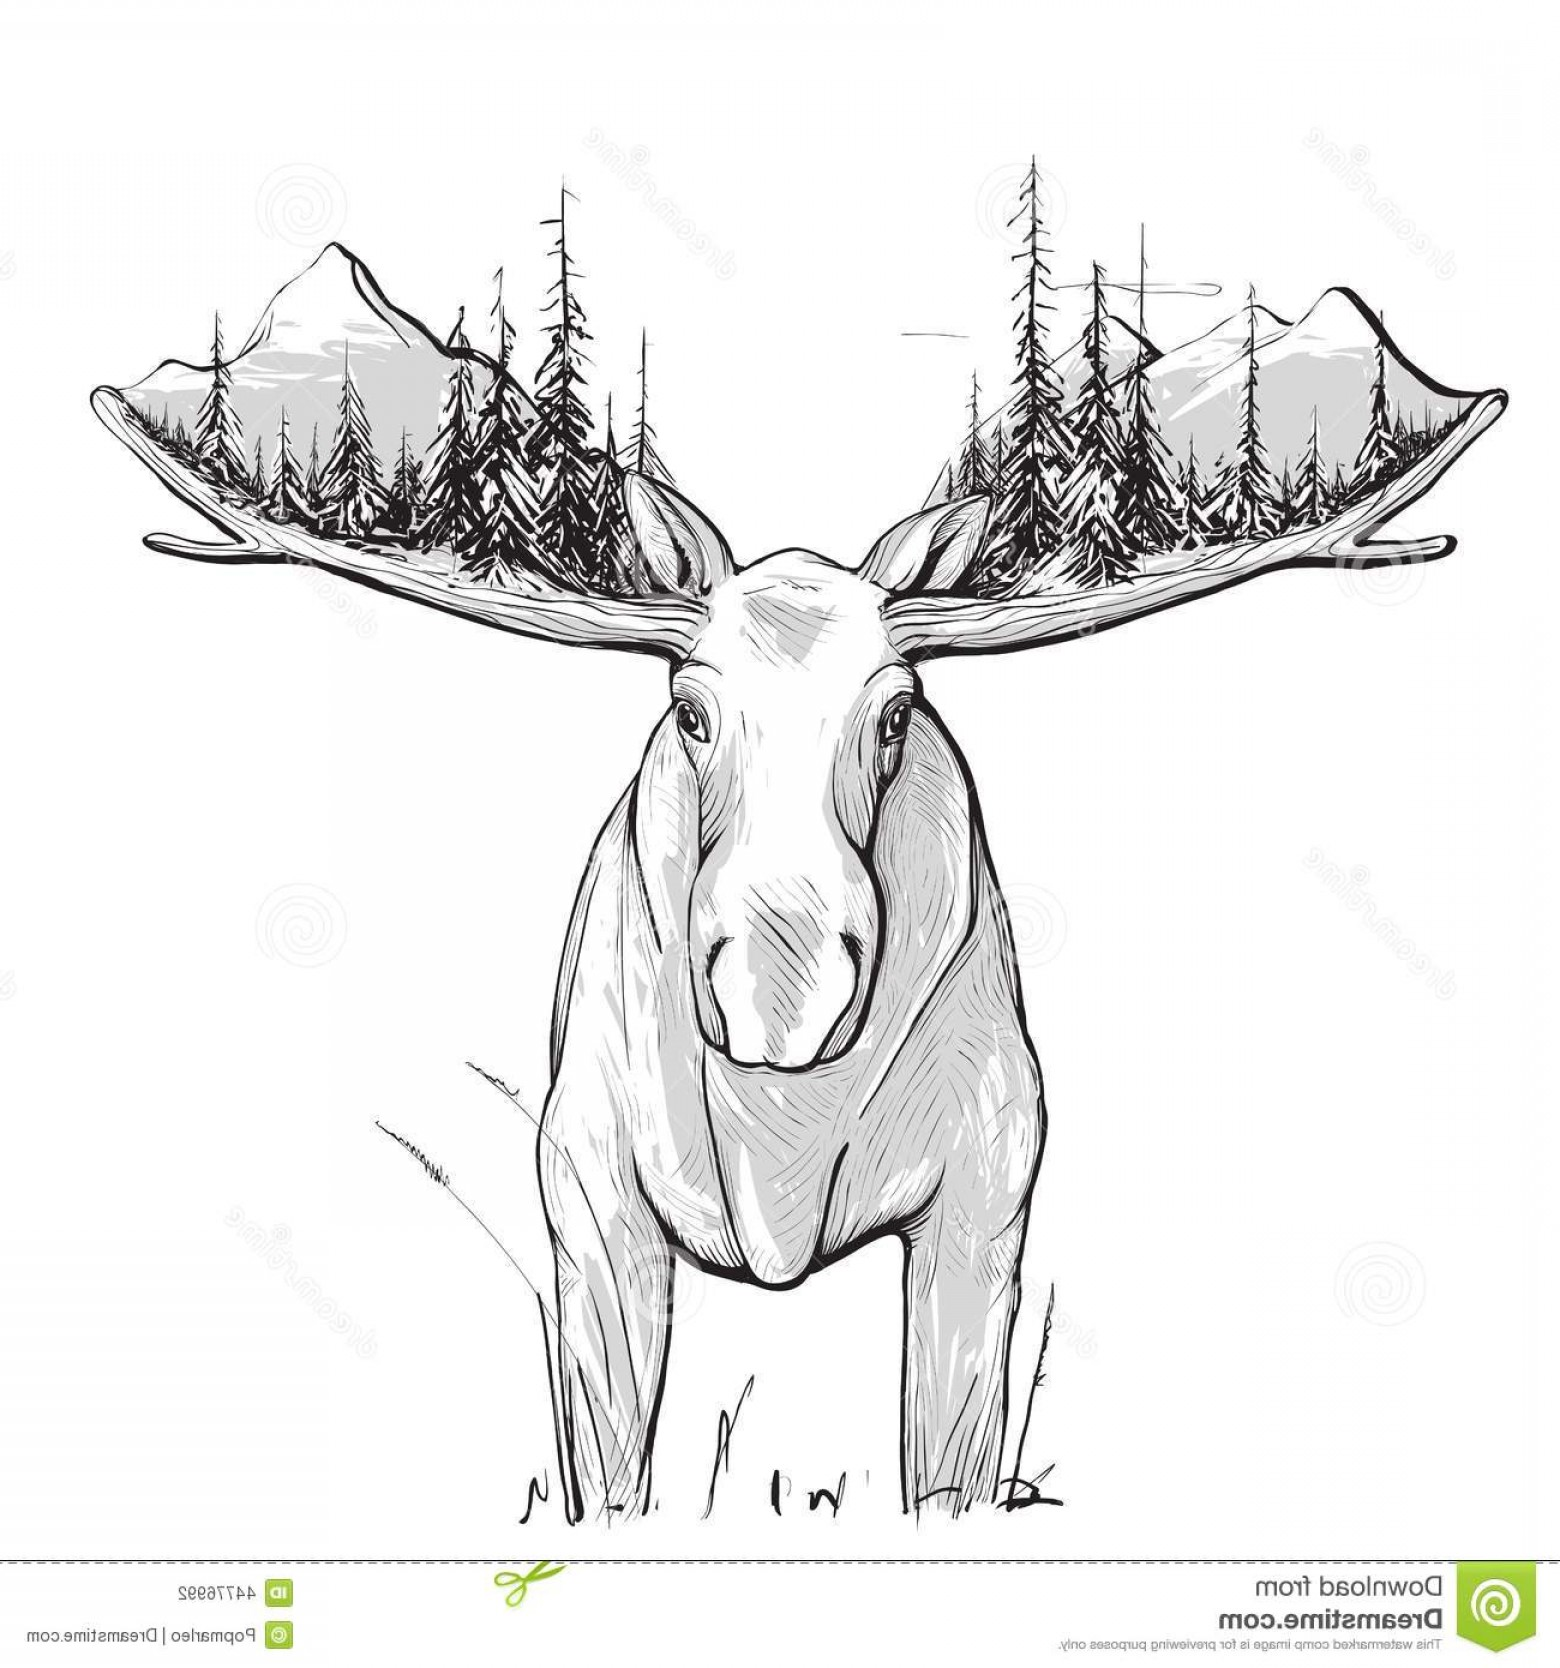 Alaska Moose Vectors: Stock Illustration Moose Forest Mountains Illustration Animal Nature Drawing Has White Undercoat Vector Eps Image